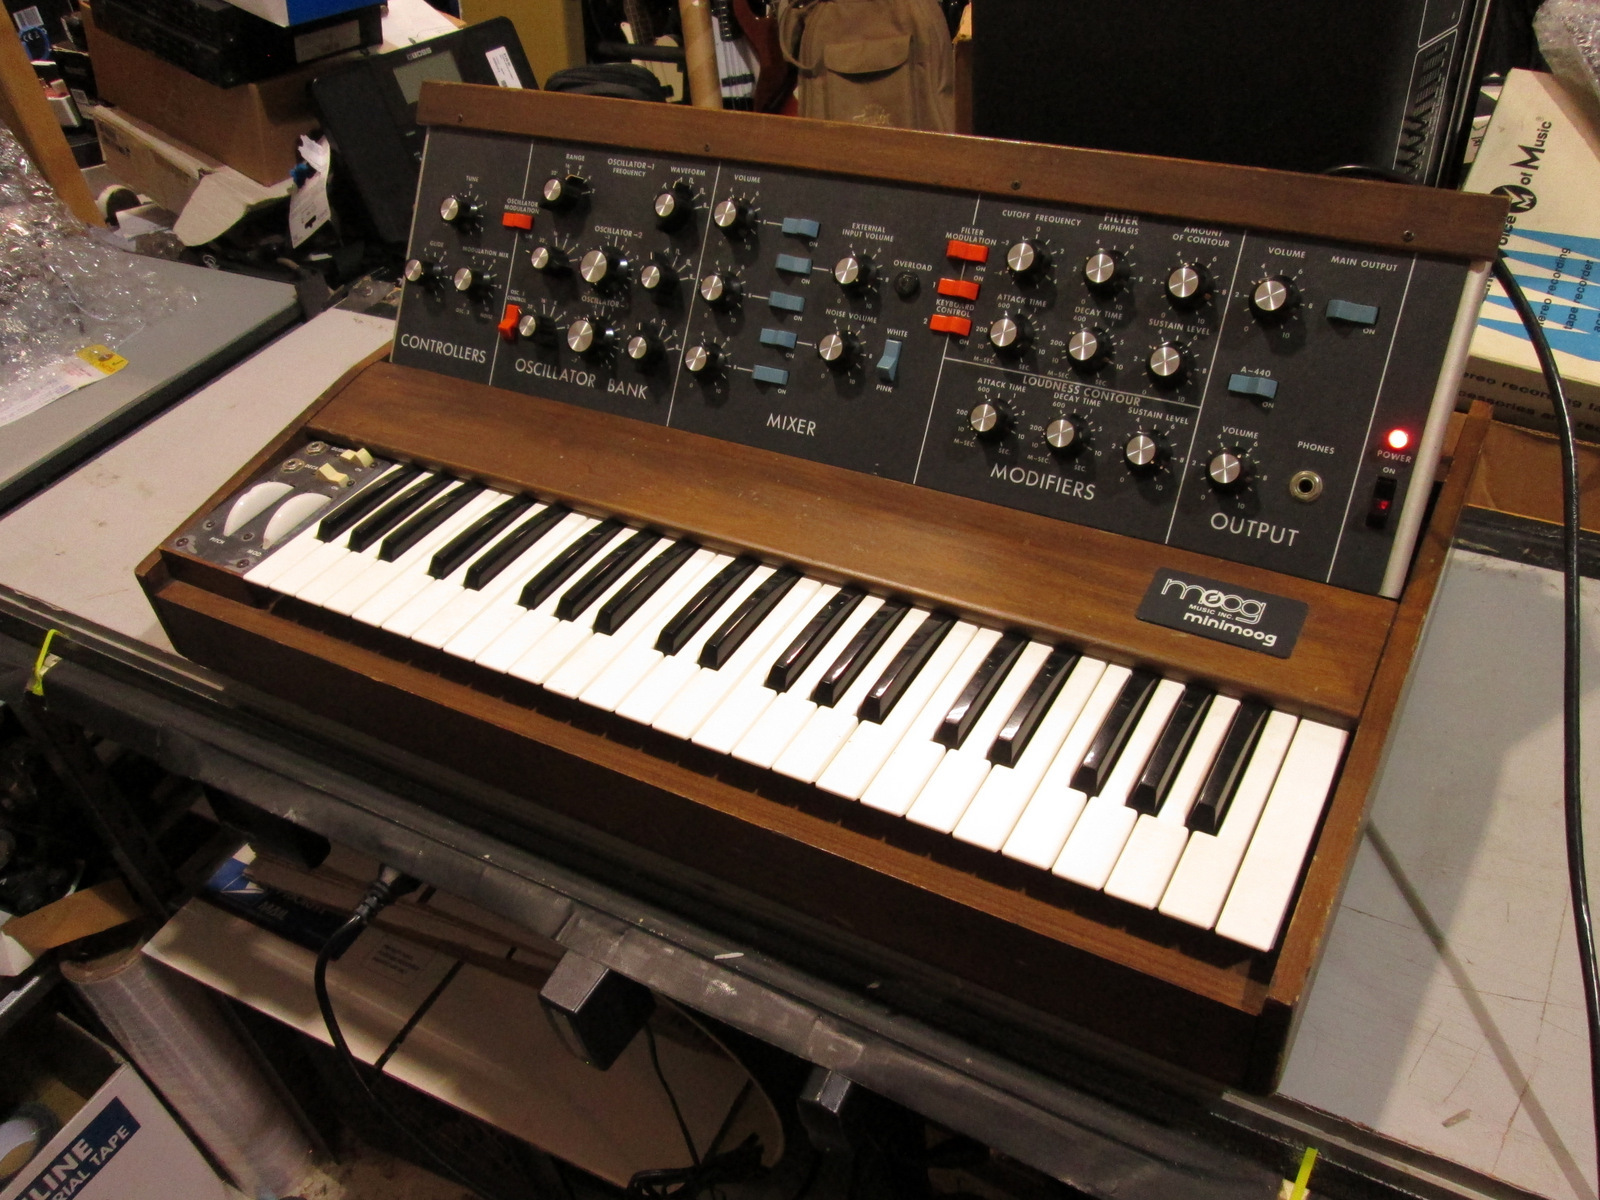 MOOG MiniMoog Model D 1970s Analog Synthesizer - LOCAL PICKUP ONLY!